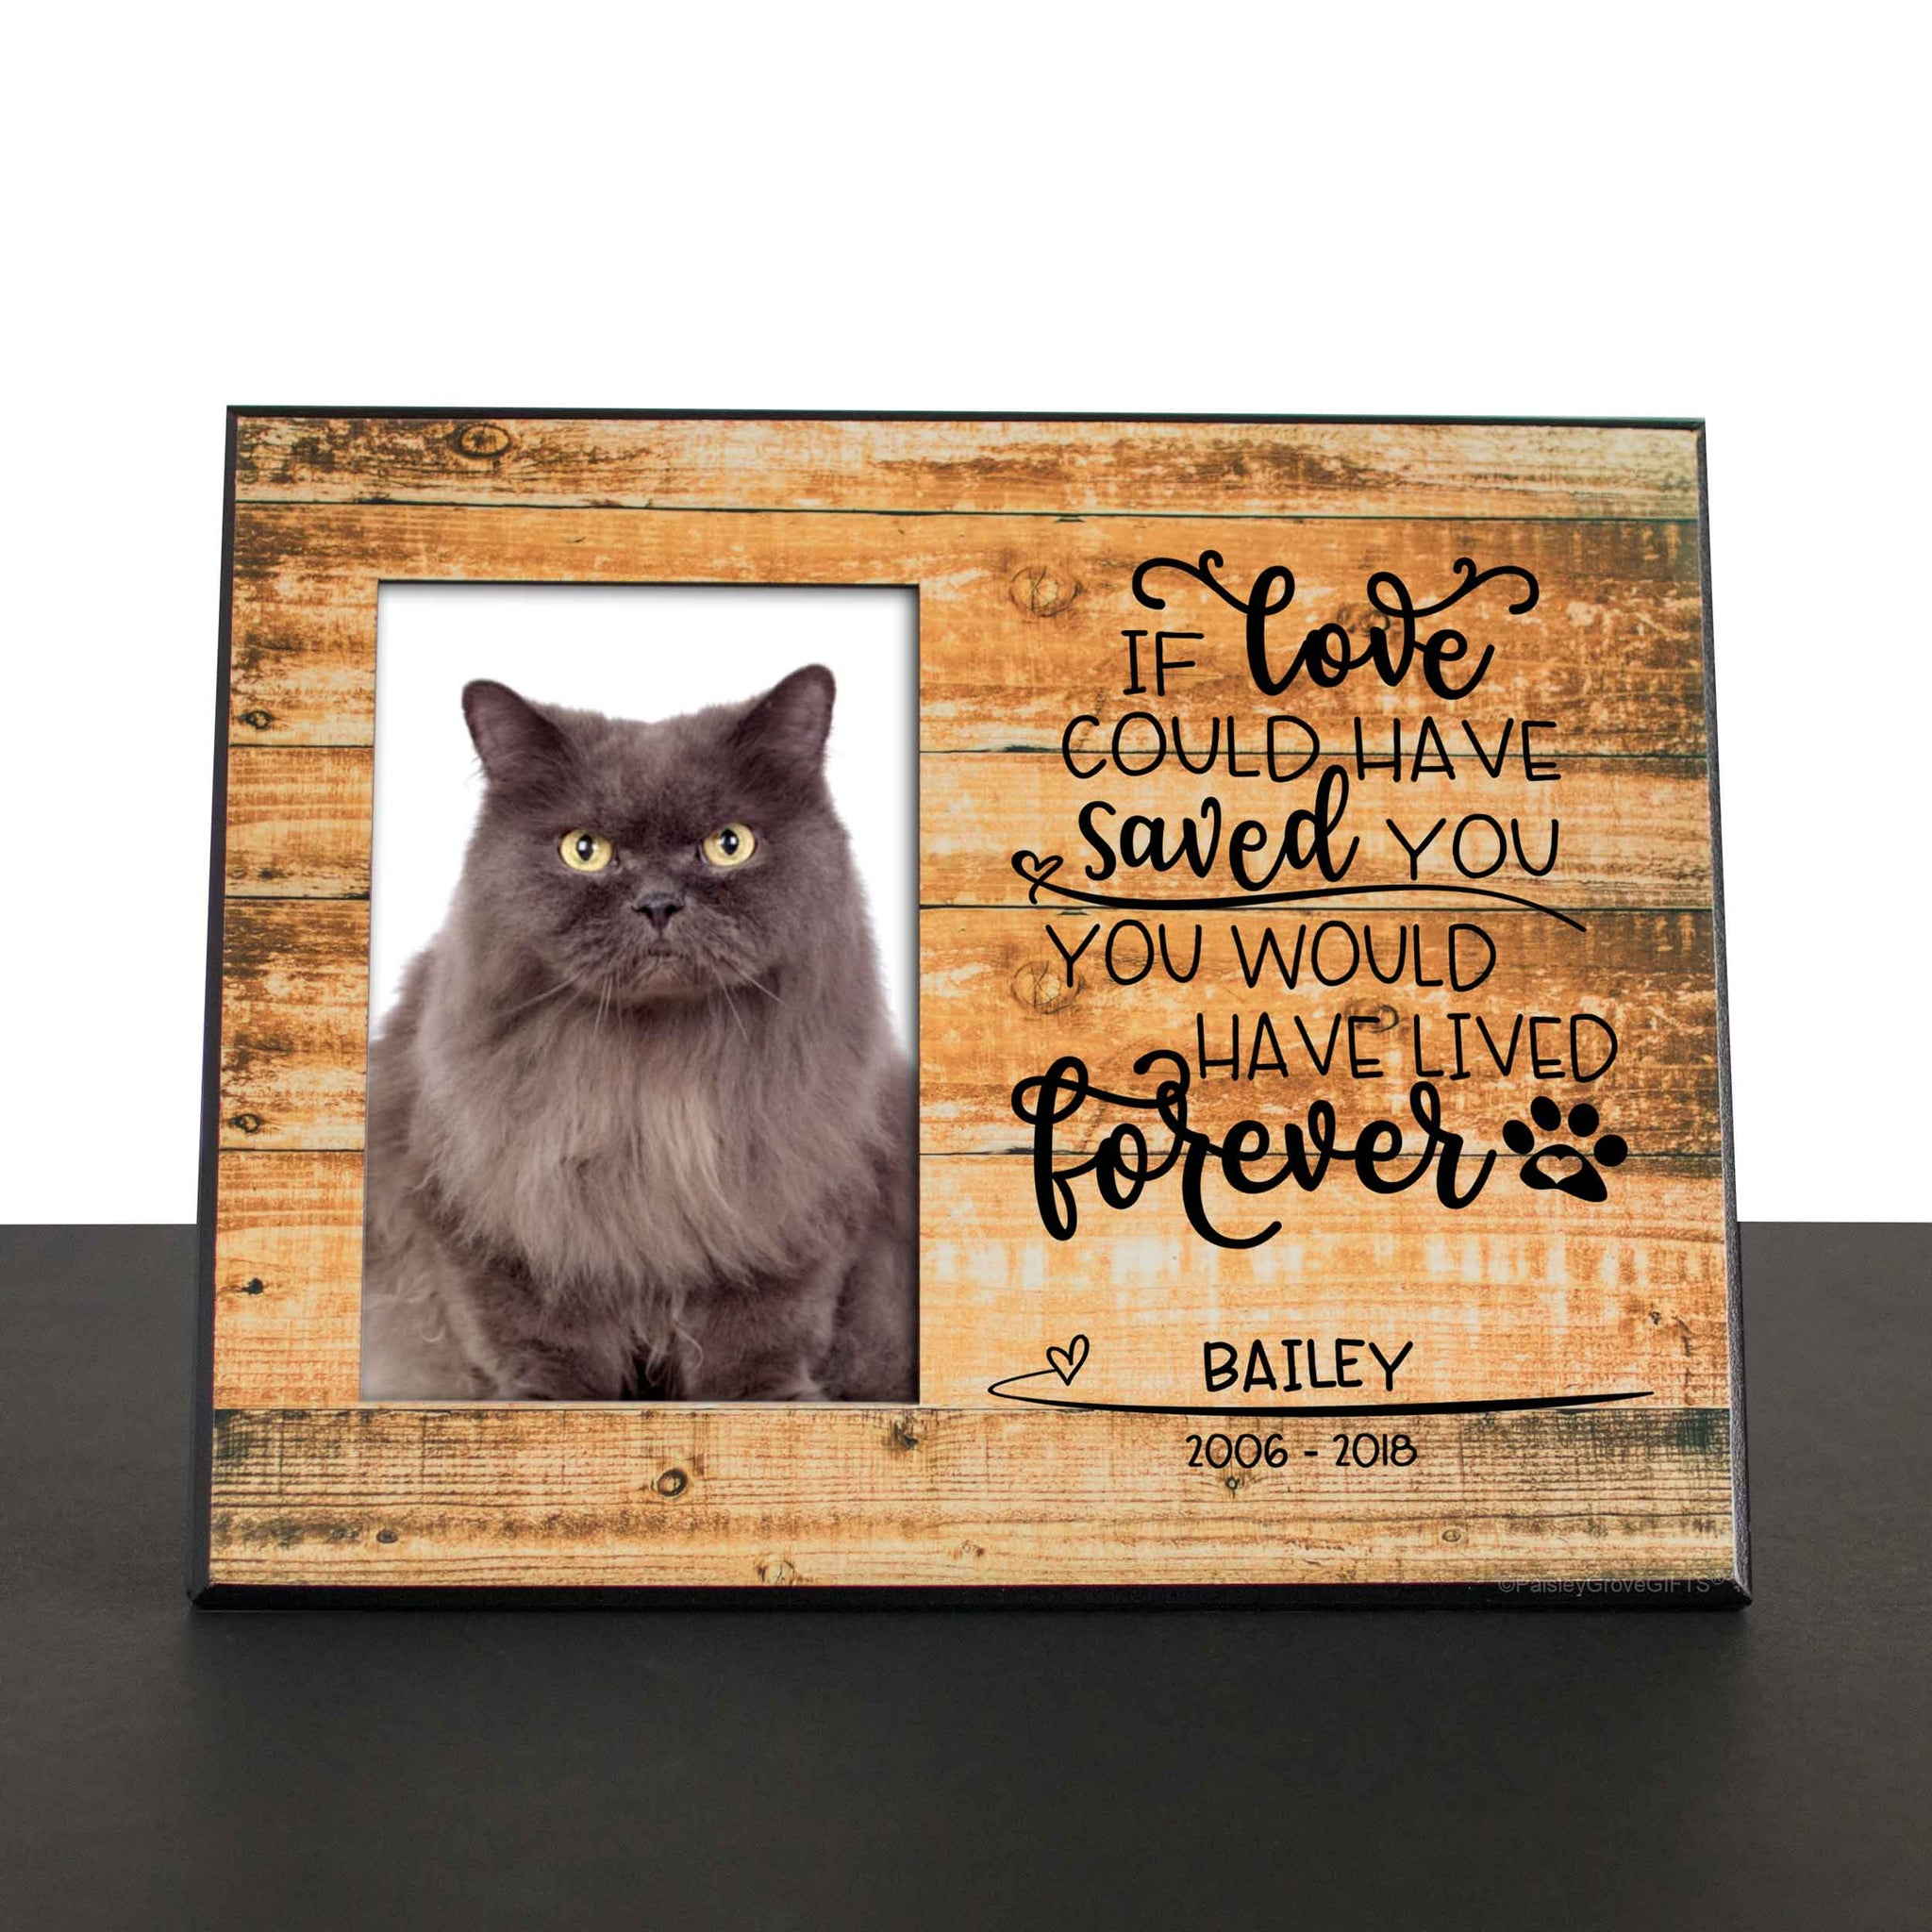 CopyrightPaisleyGroveGIFTS S280a1 Cat Loss Sympathy Gift for Pet Death Remembrance Frame